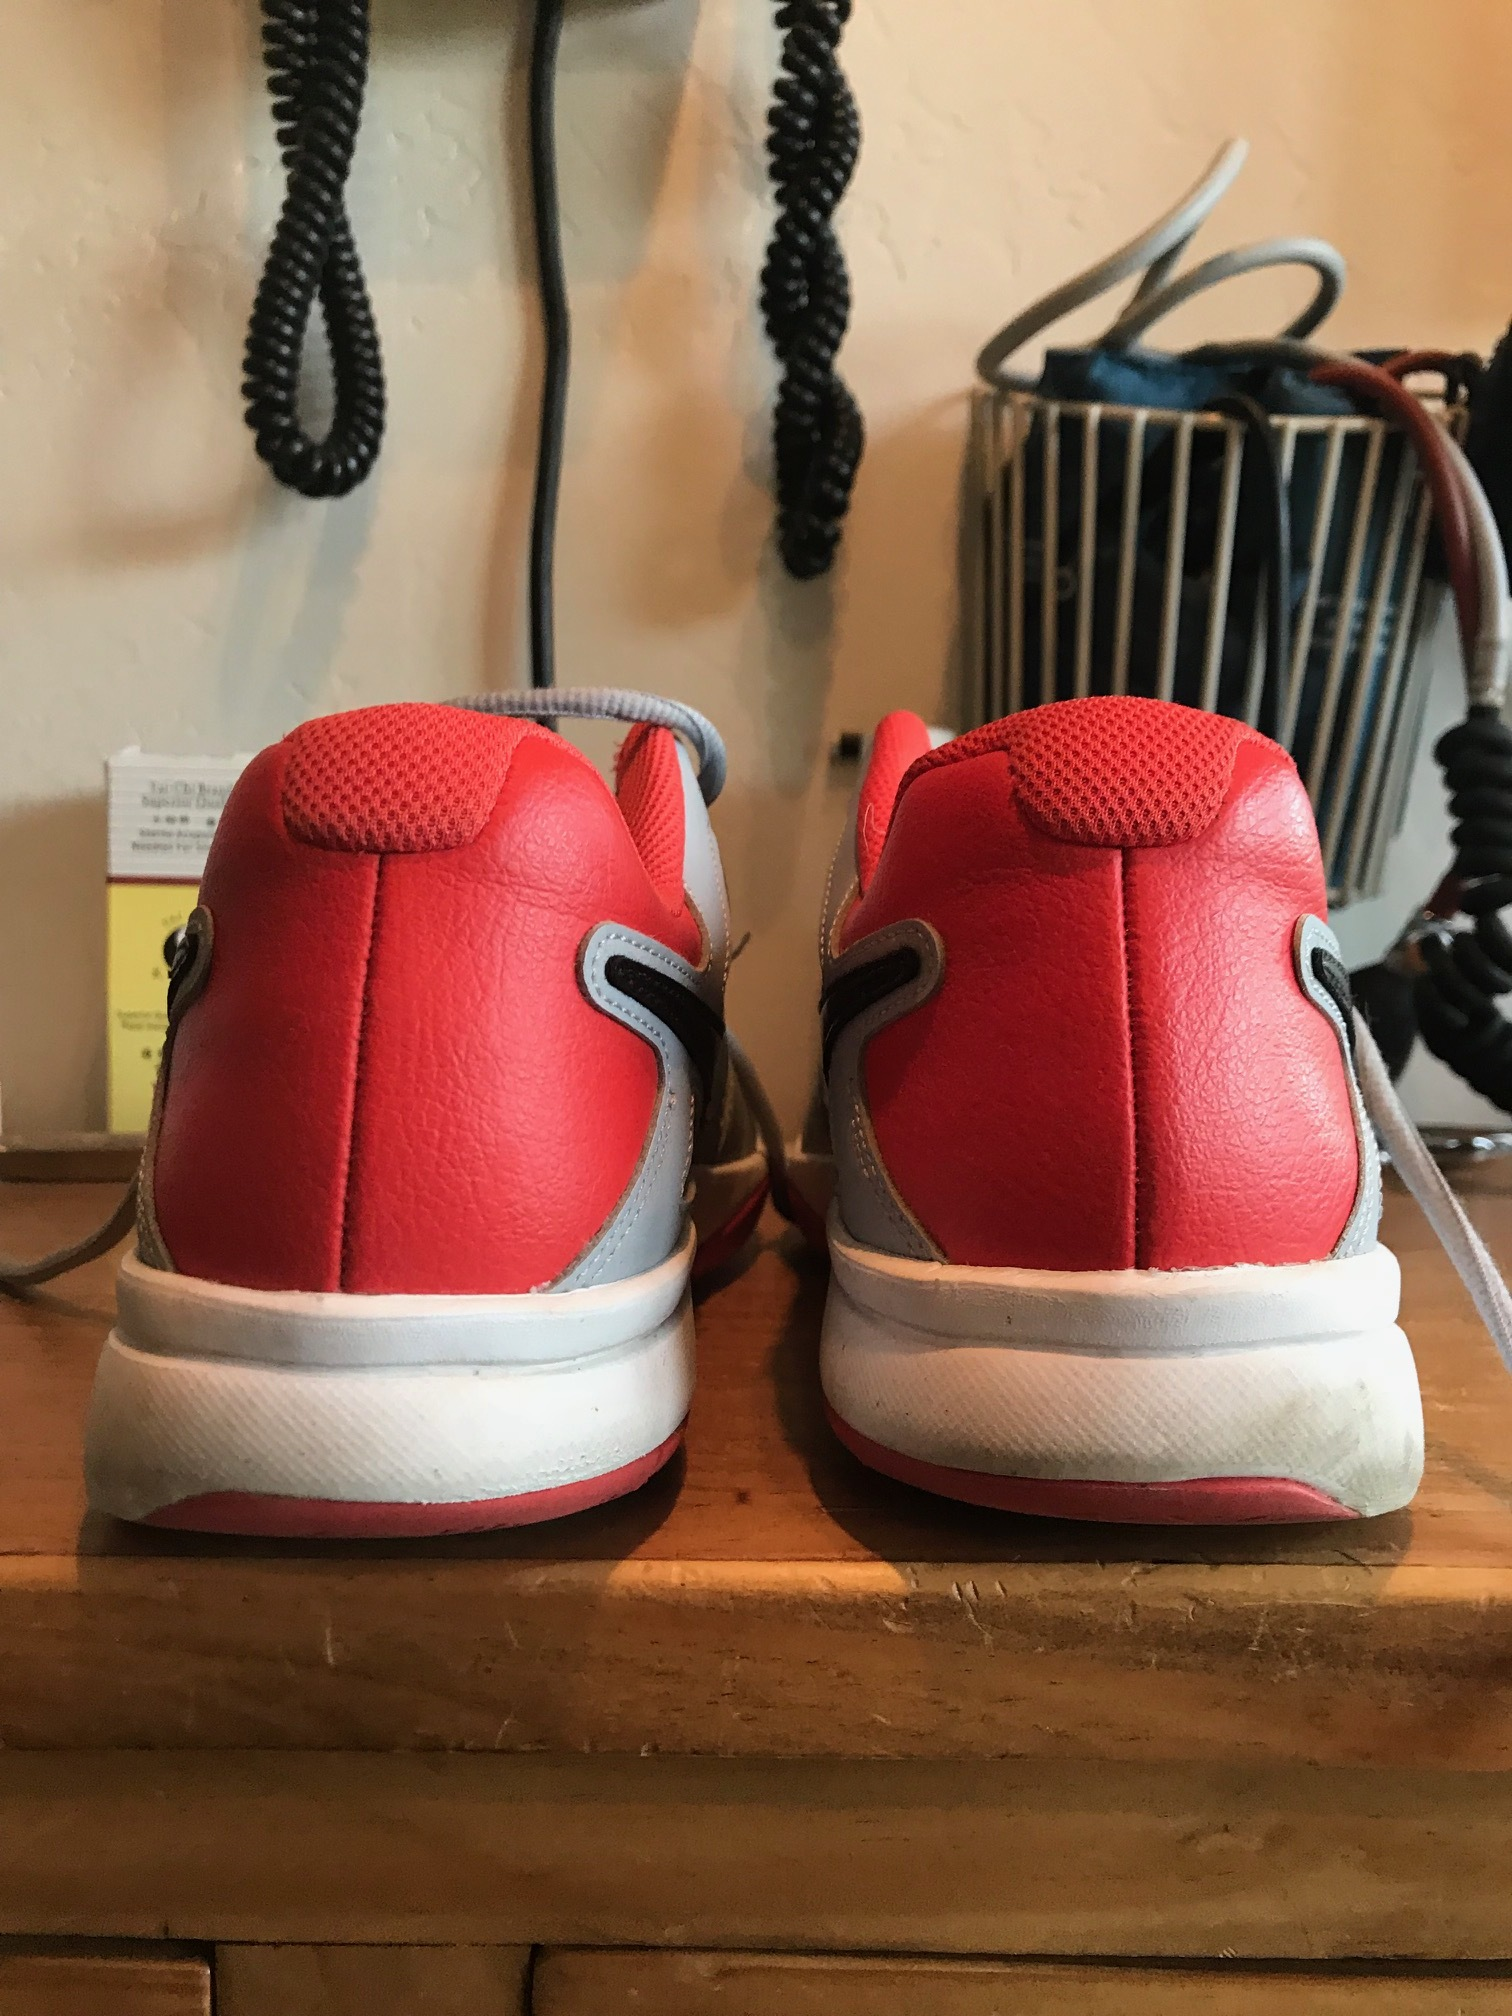 line up the center of the heel counters with the outsoles, and what do you see?